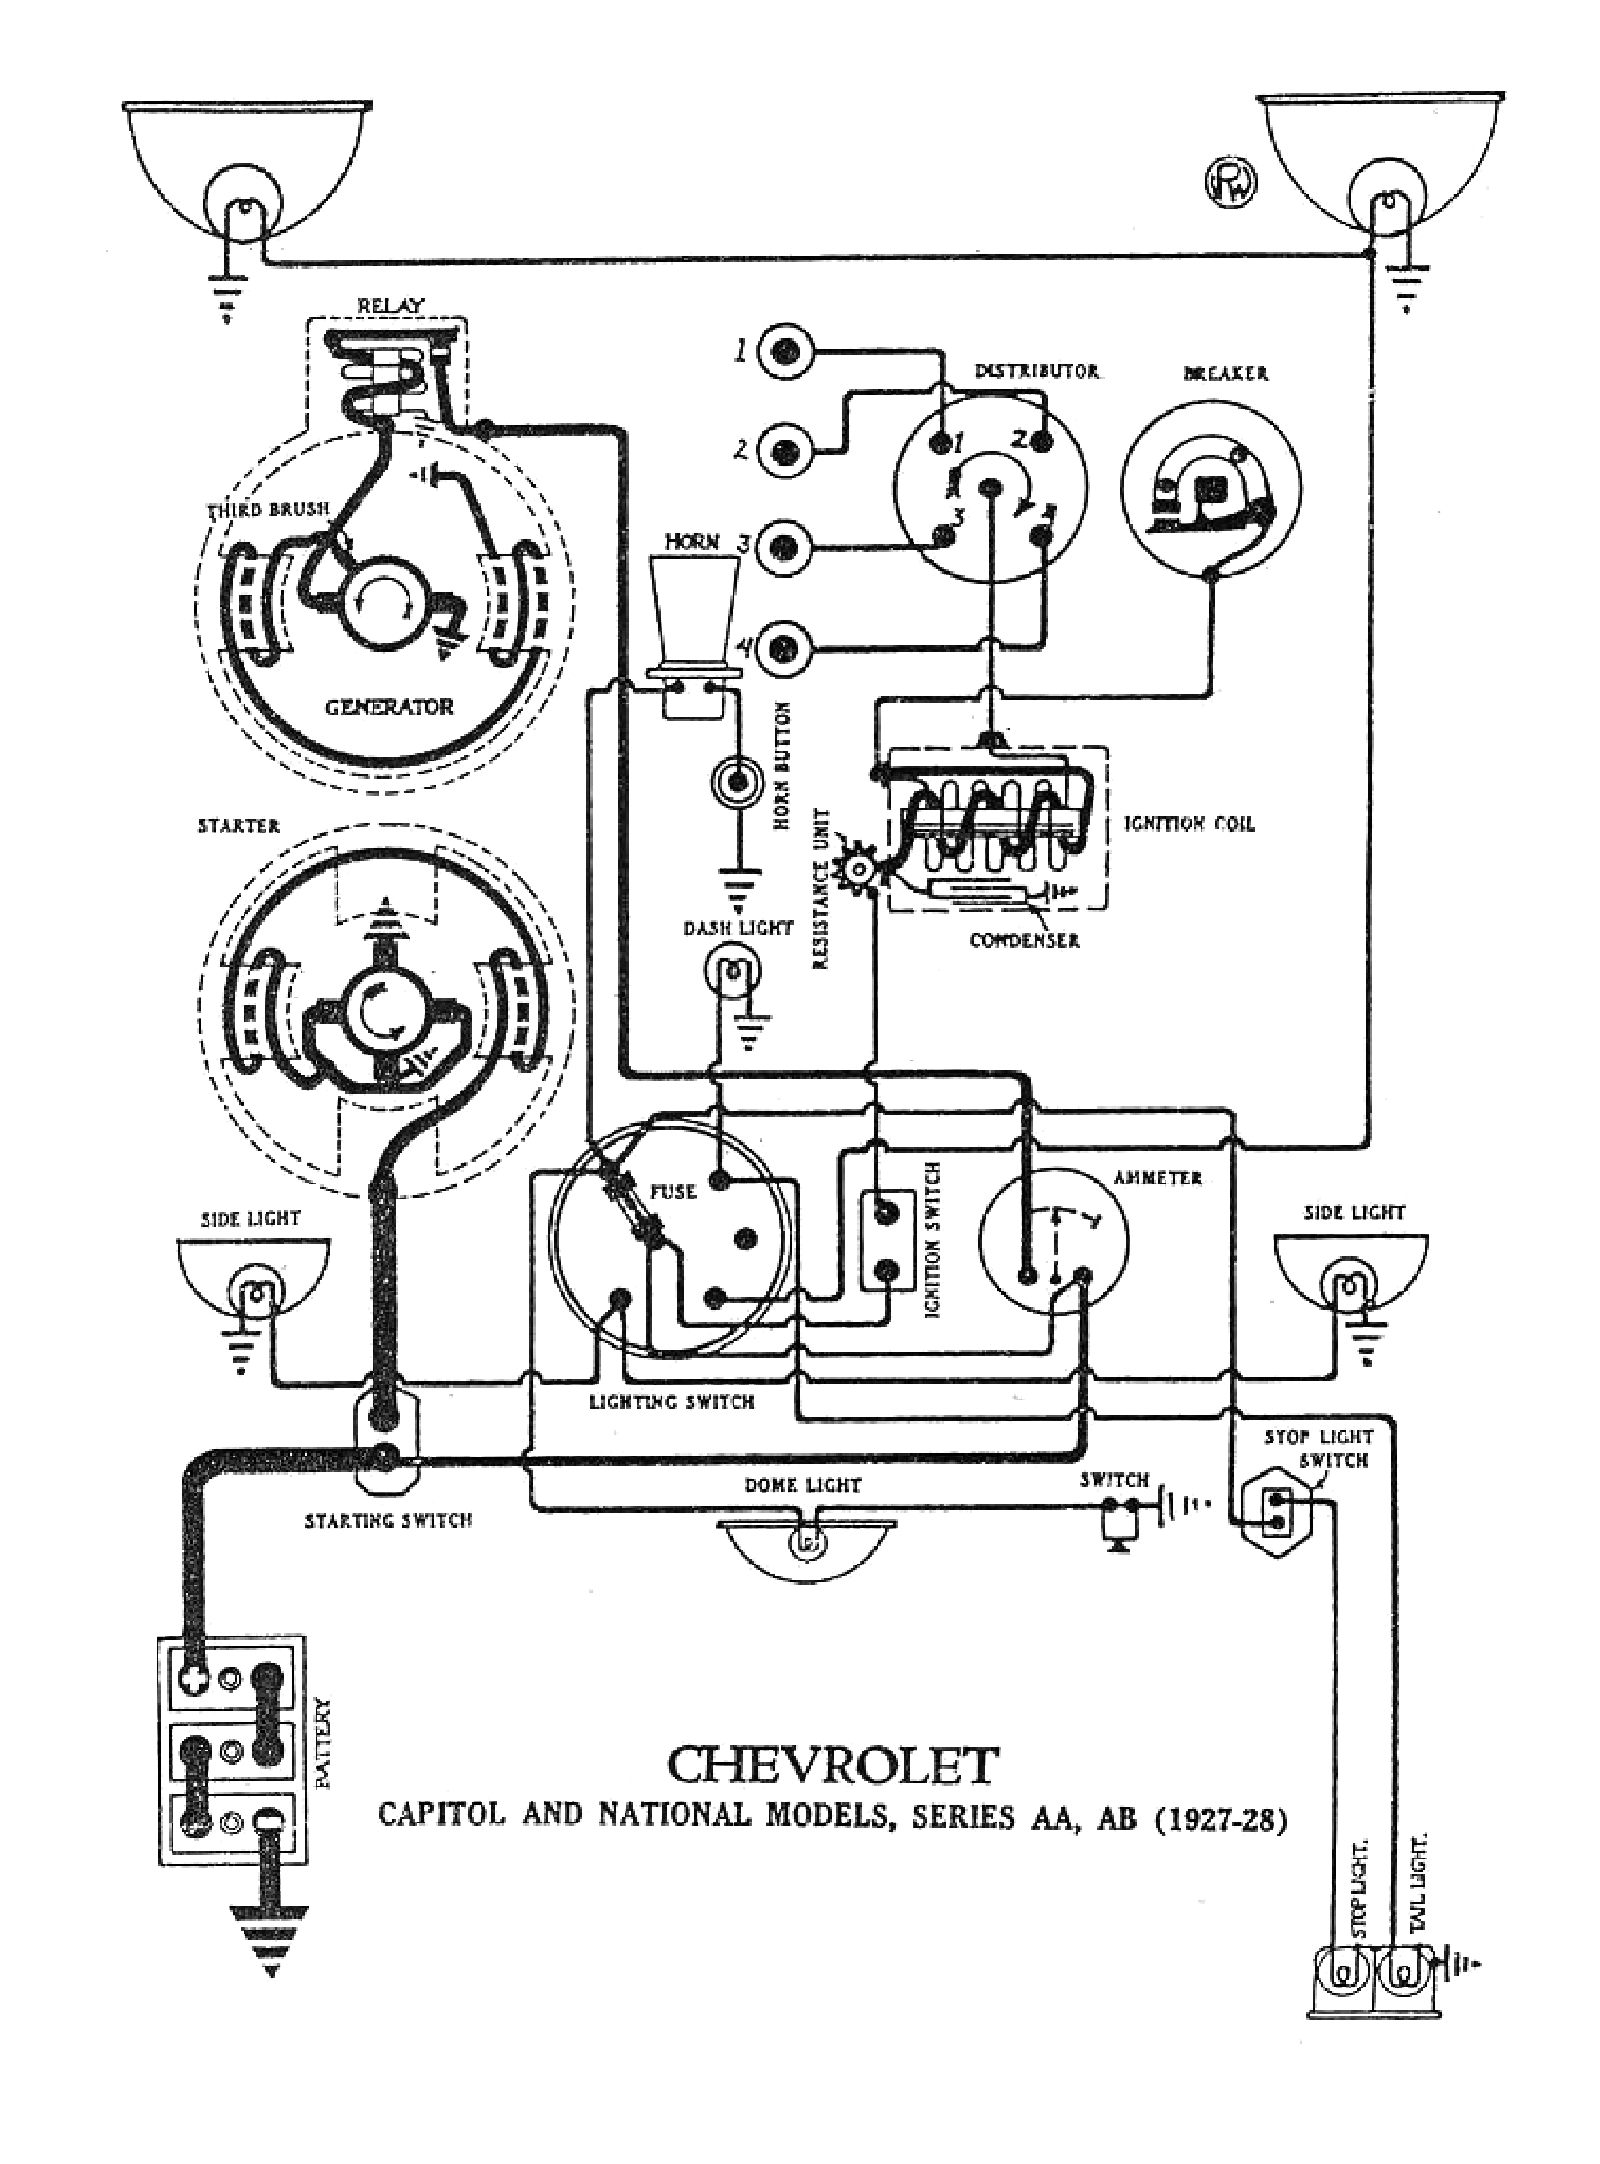 2728wiring chevy wiring diagrams chevy wiring harness diagram at mifinder.co